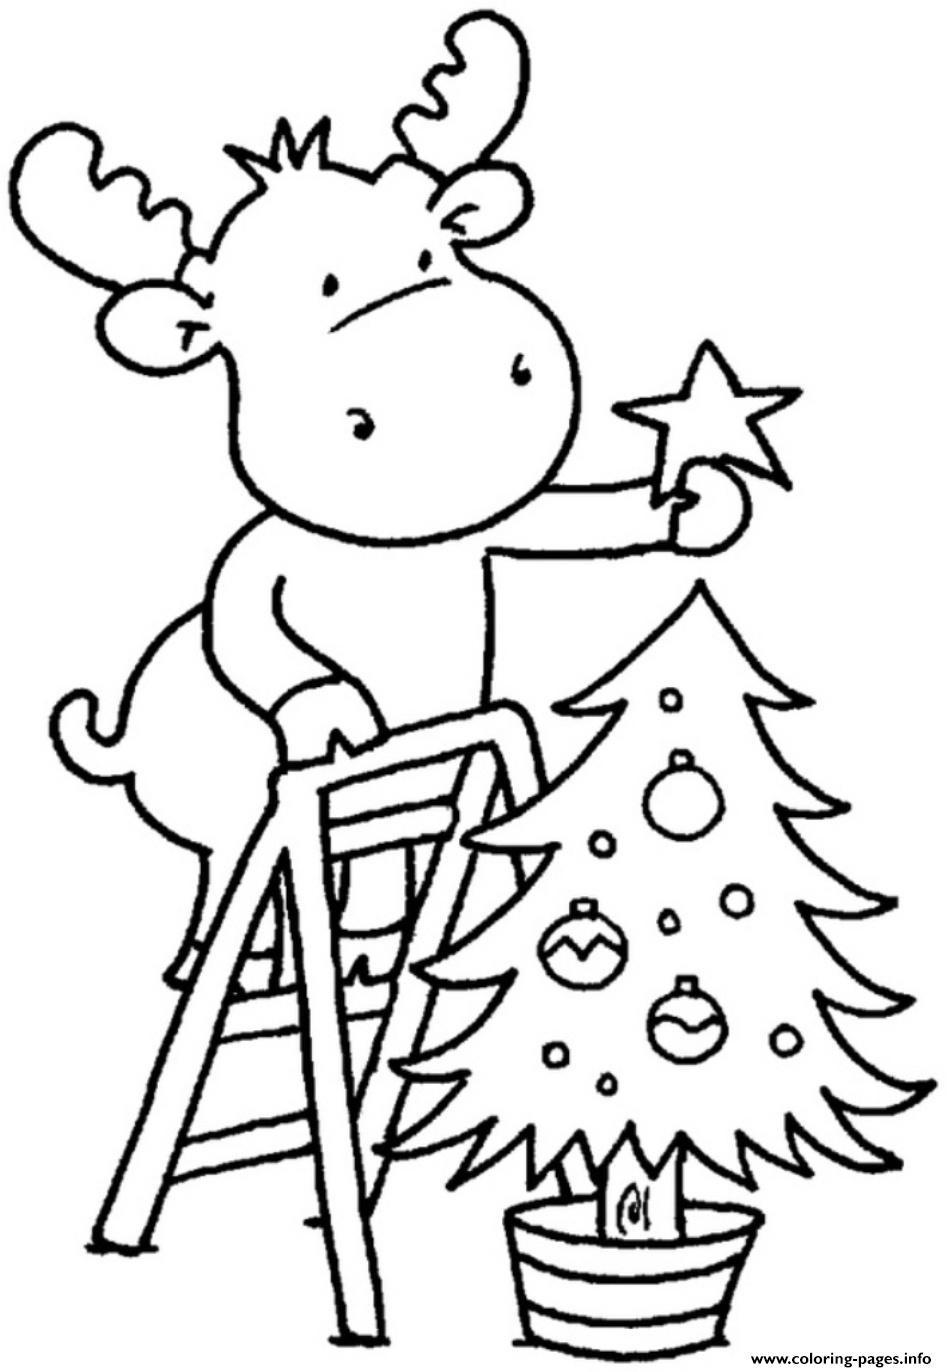 Christmas Coloring Sheets For Kids Free  Christmas Tree For Children Coloring Pages Printable